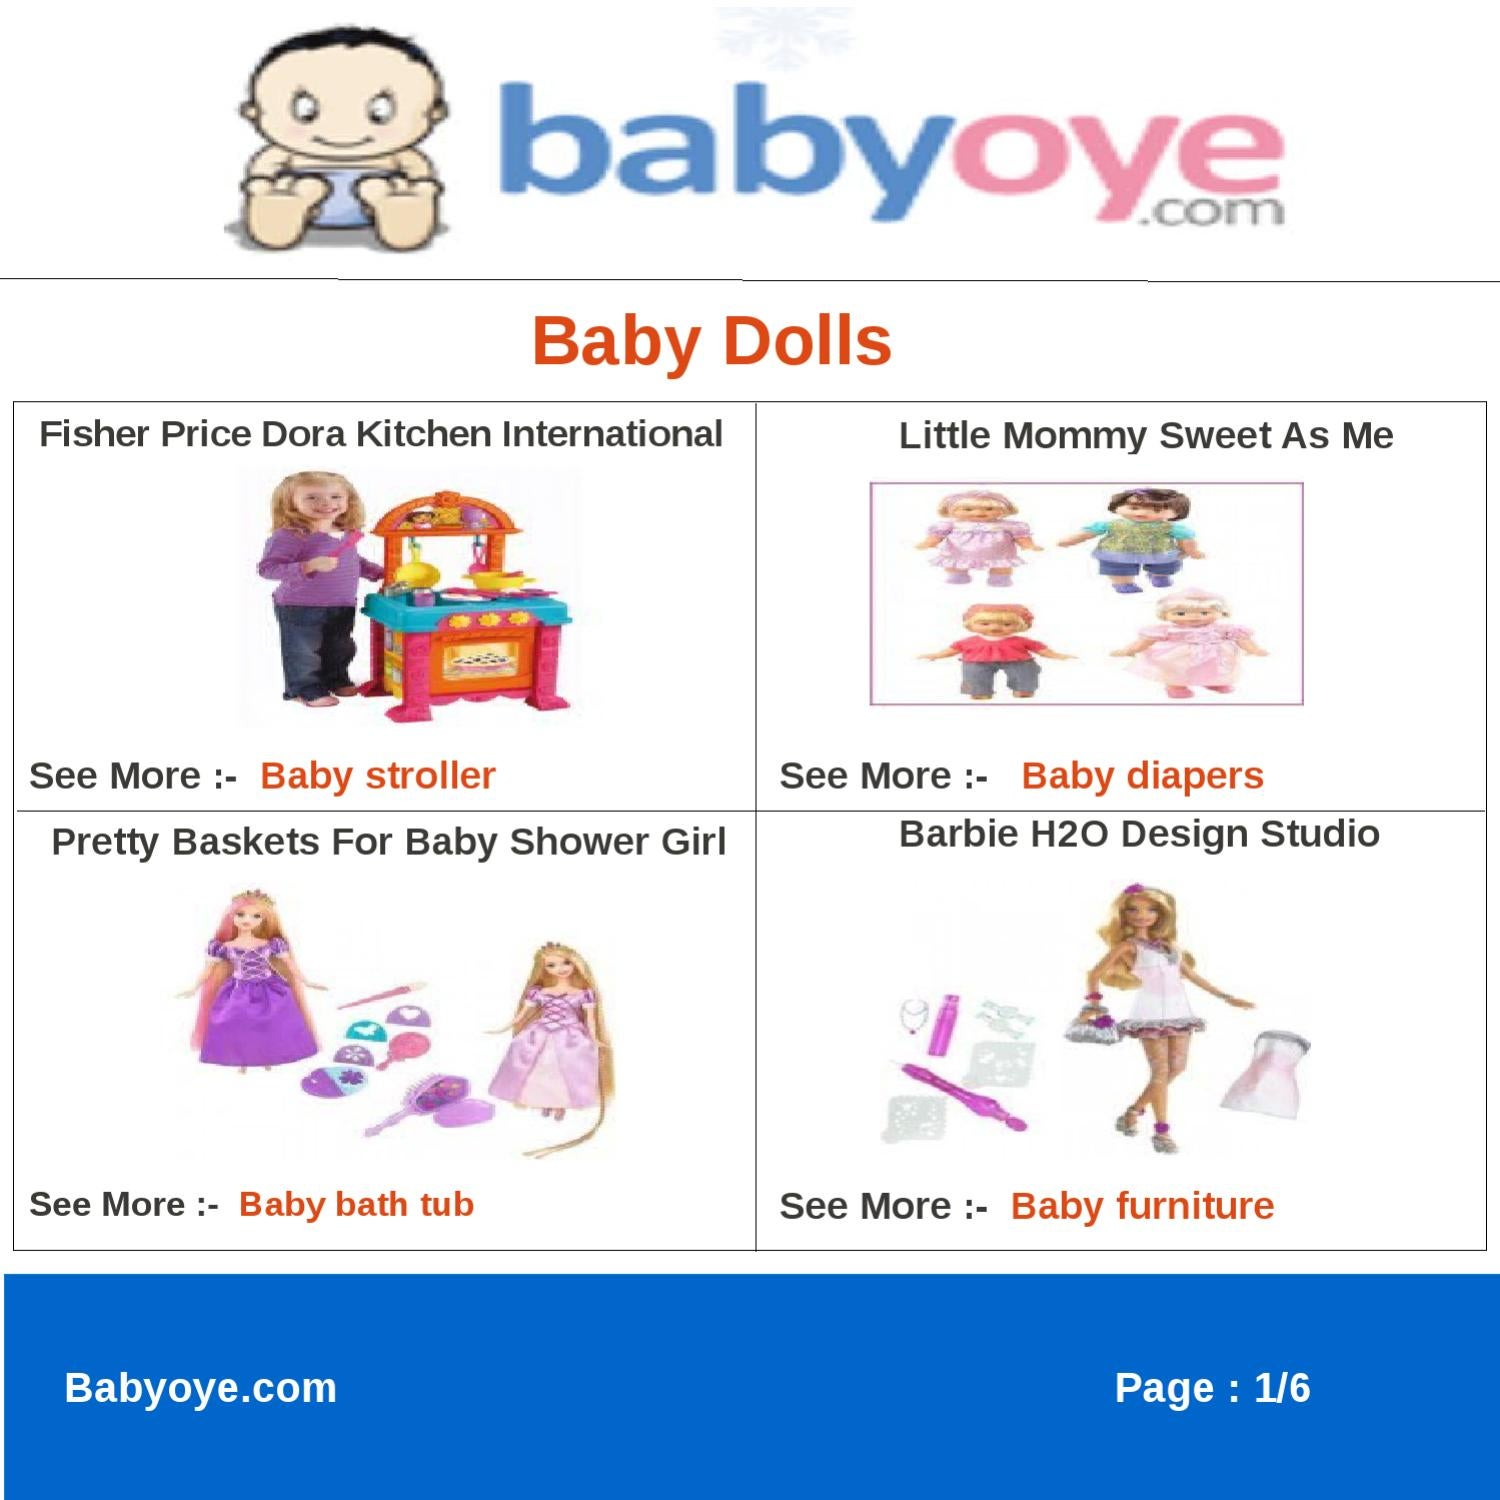 Baby Dolls By Babyoye Team Issuu